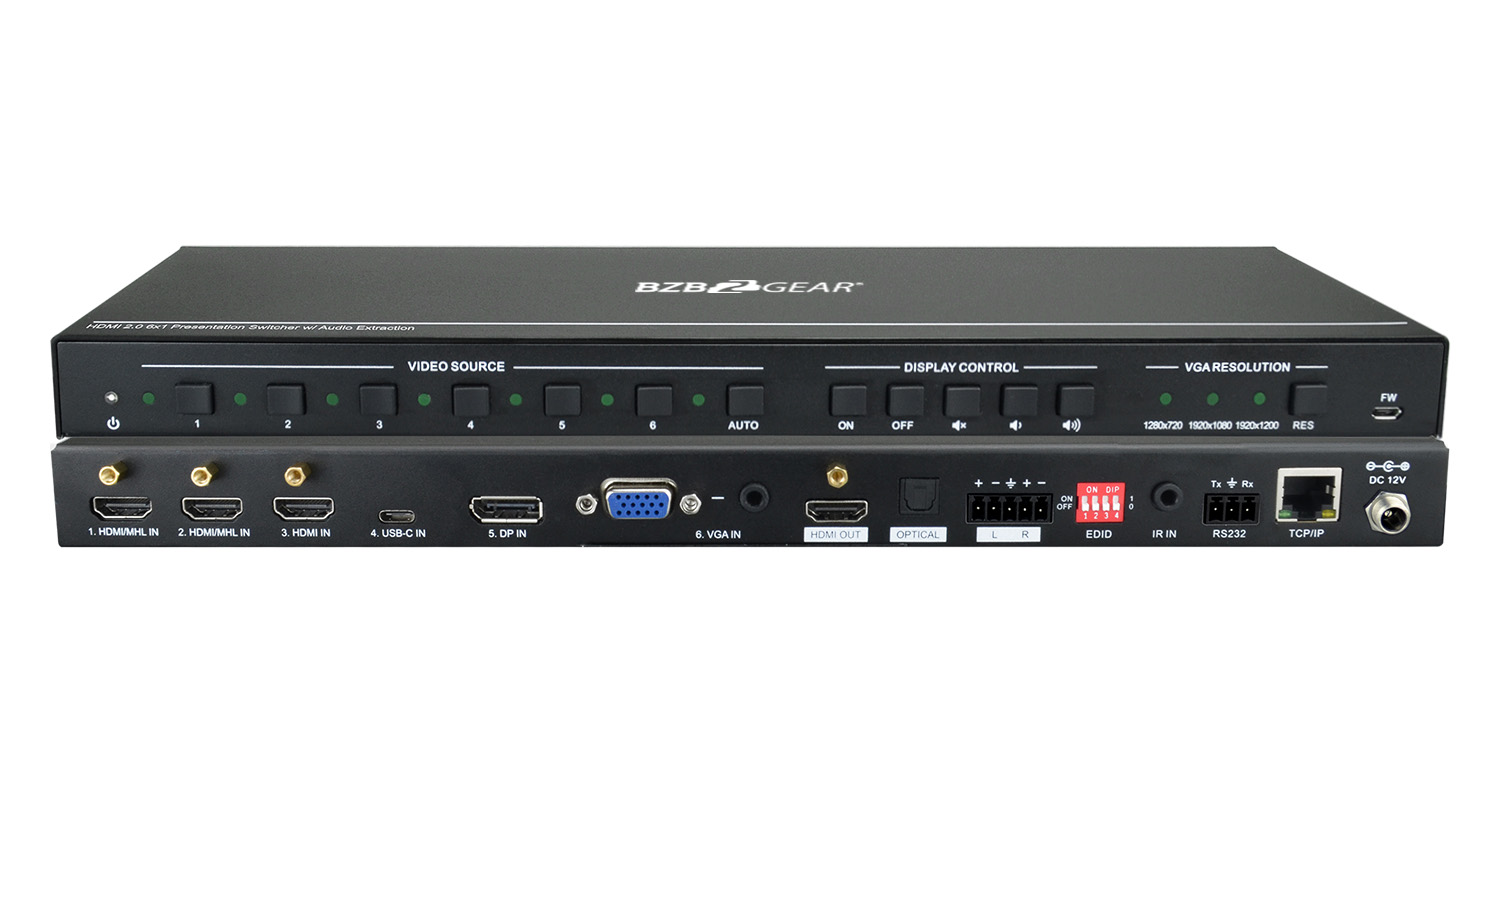 BG-PHDUV6X1 6x1 Multi-Format Presentation Switcher with HDMI/VGA and USB-C by BZBGEAR